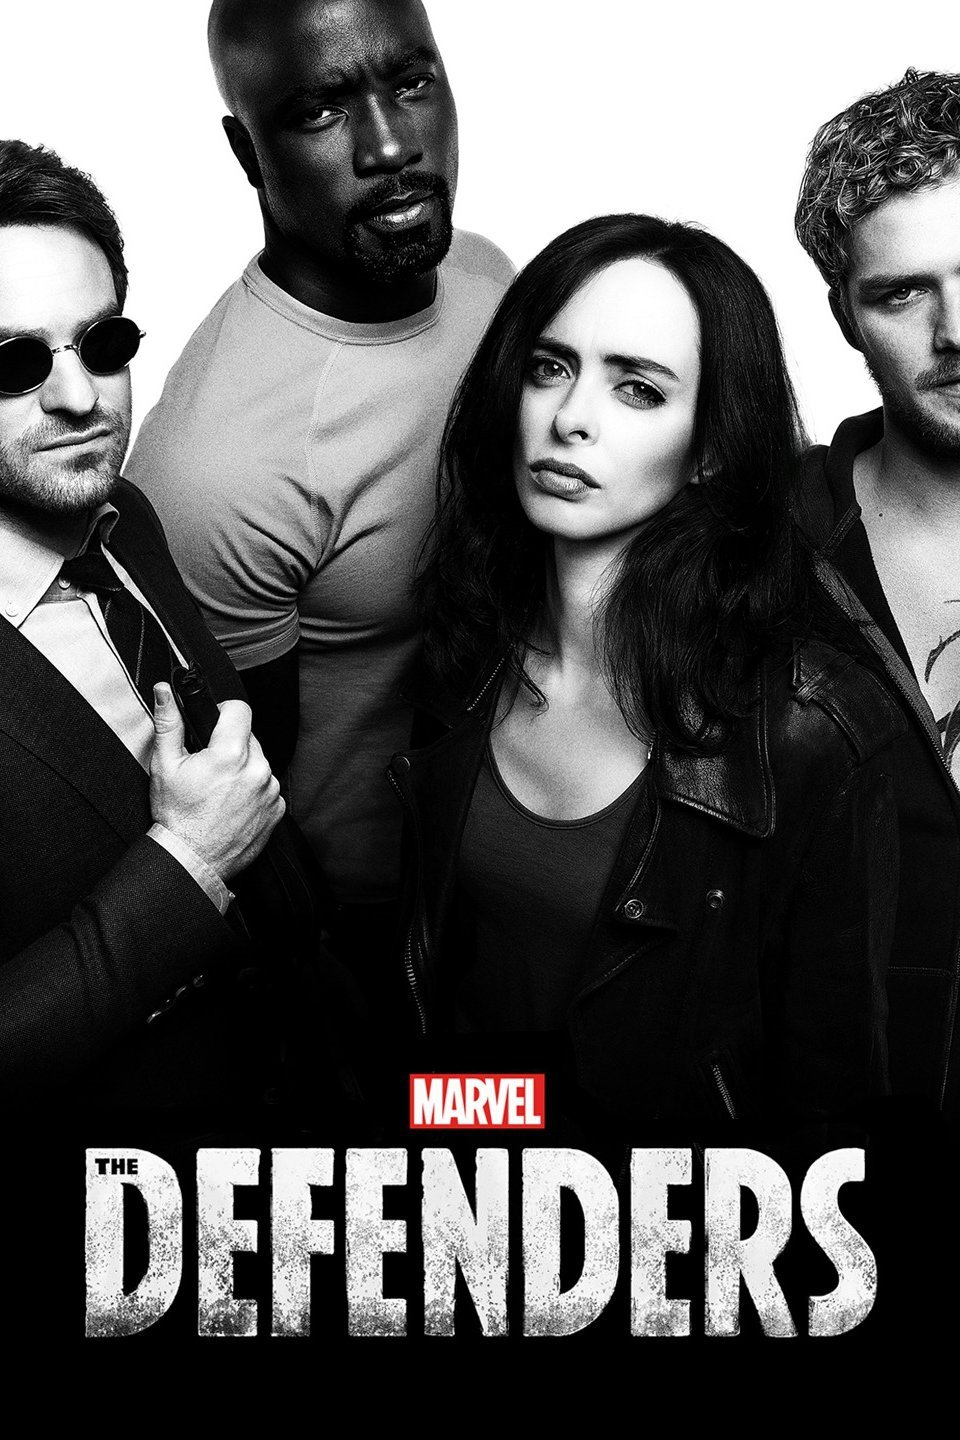 The Defenders Download Season 1 Complete 720p WEBRip Micromkv